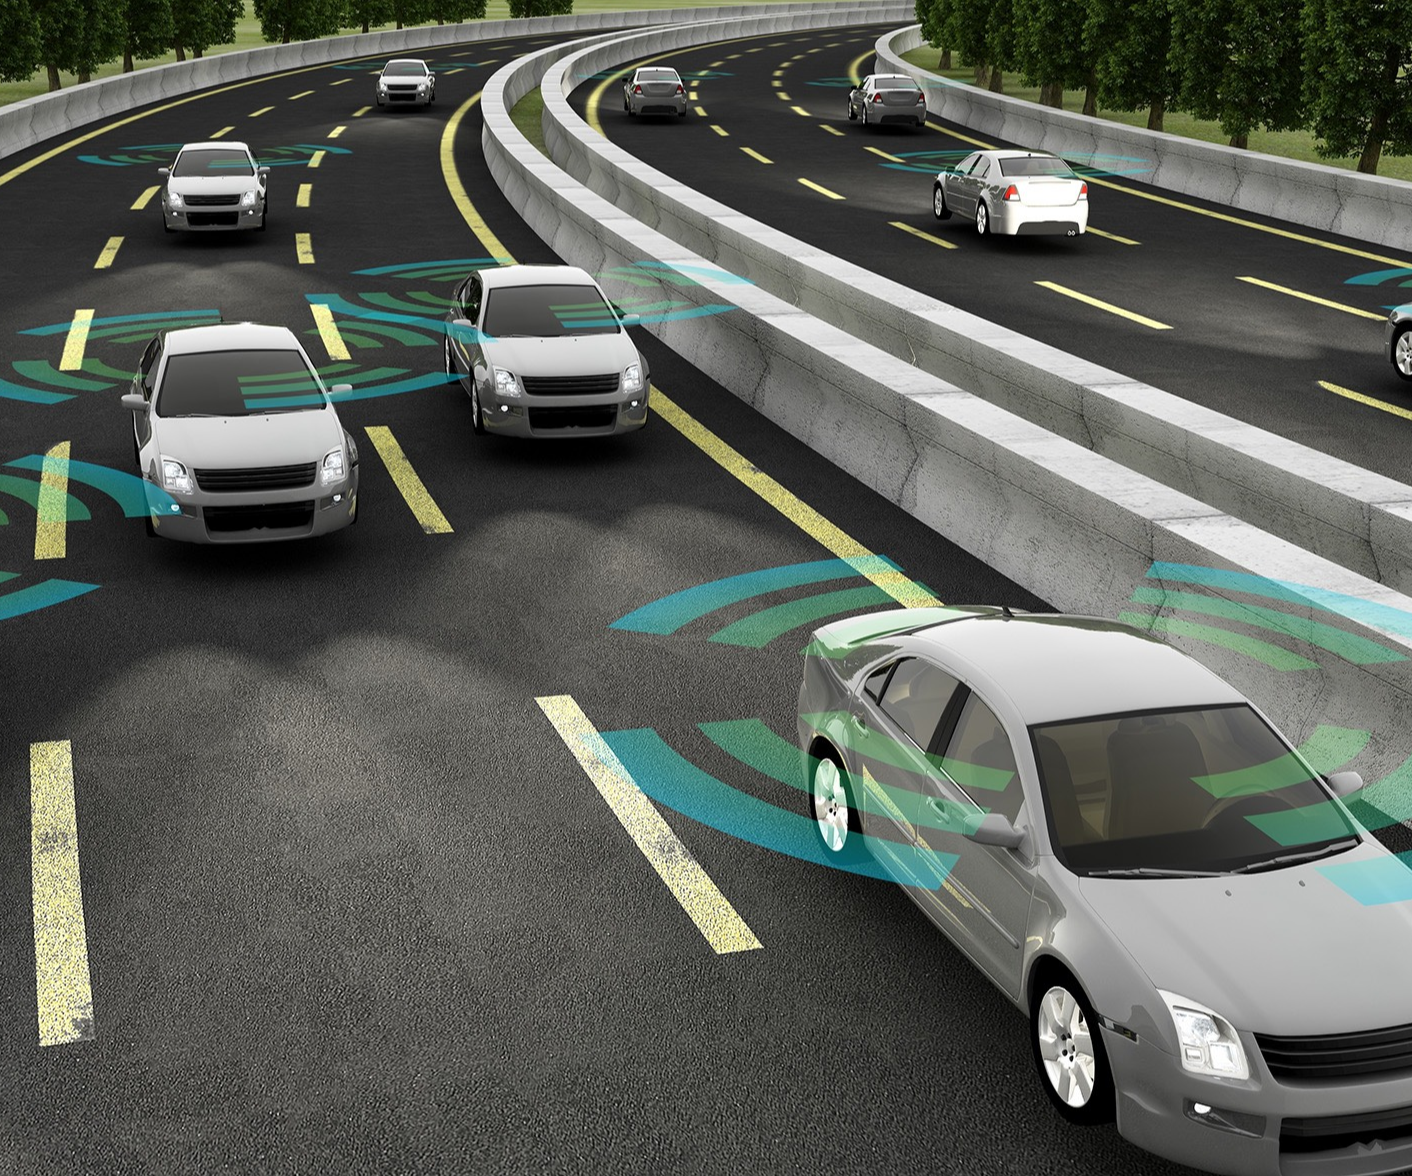 U-M and TRI Researchers Develop Control Software to Ensure Autonomous Vehicles Stay in Lane